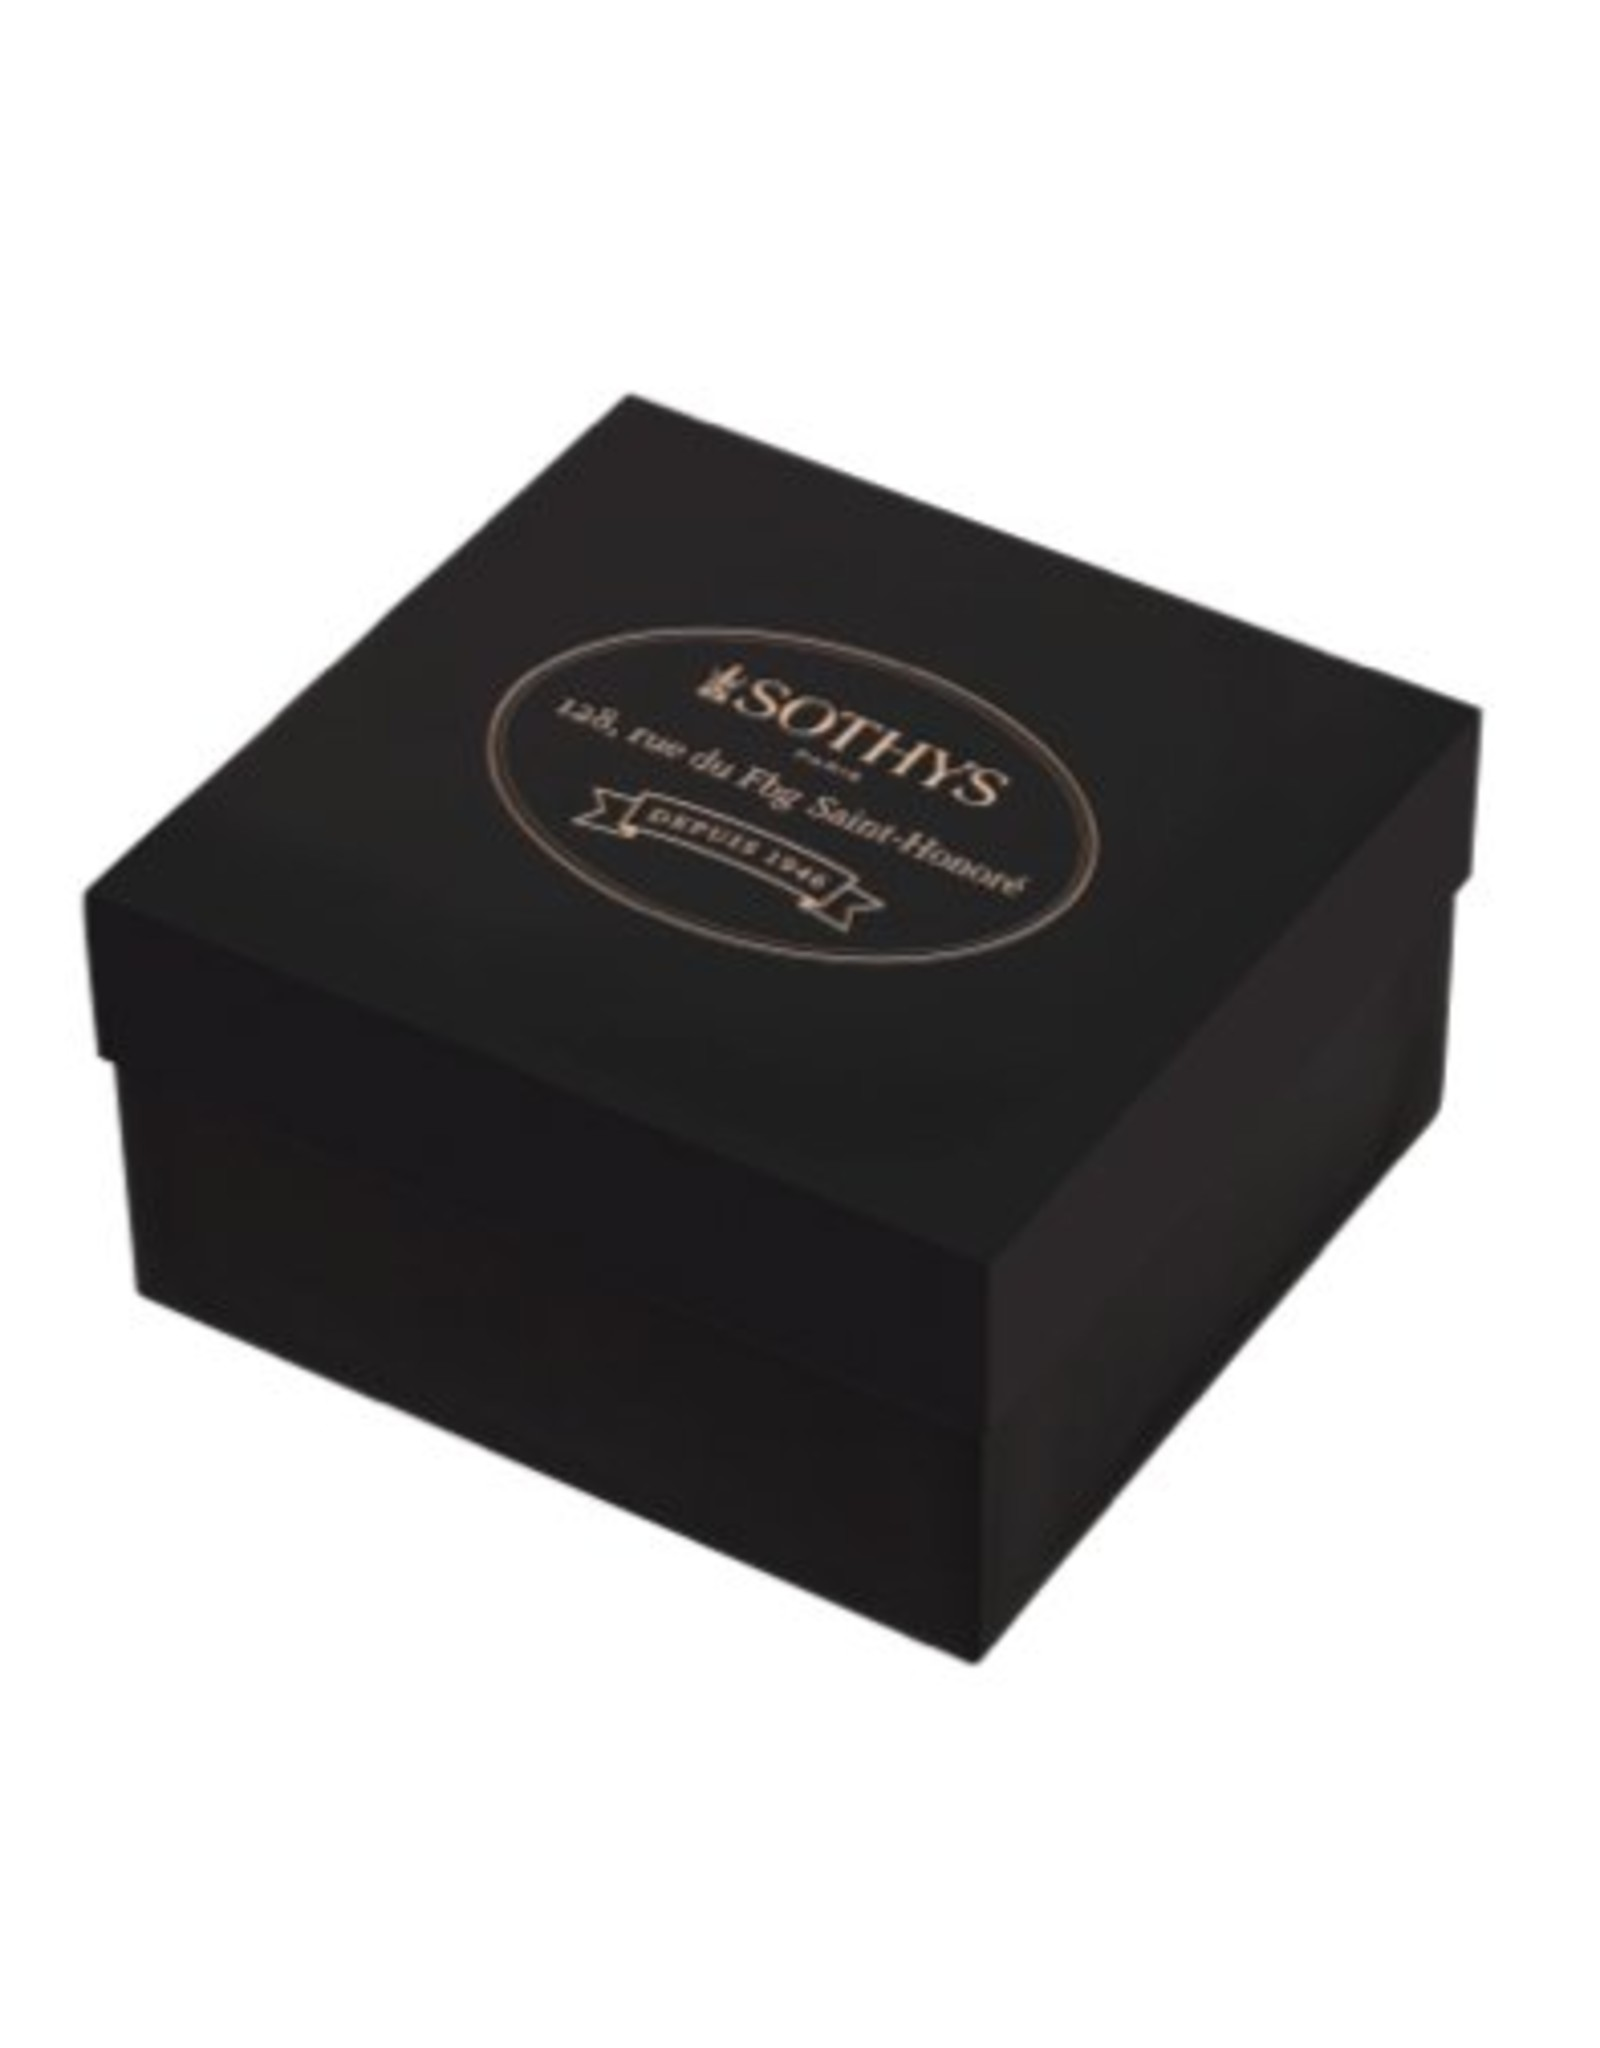 SOTHYS Gift box without content